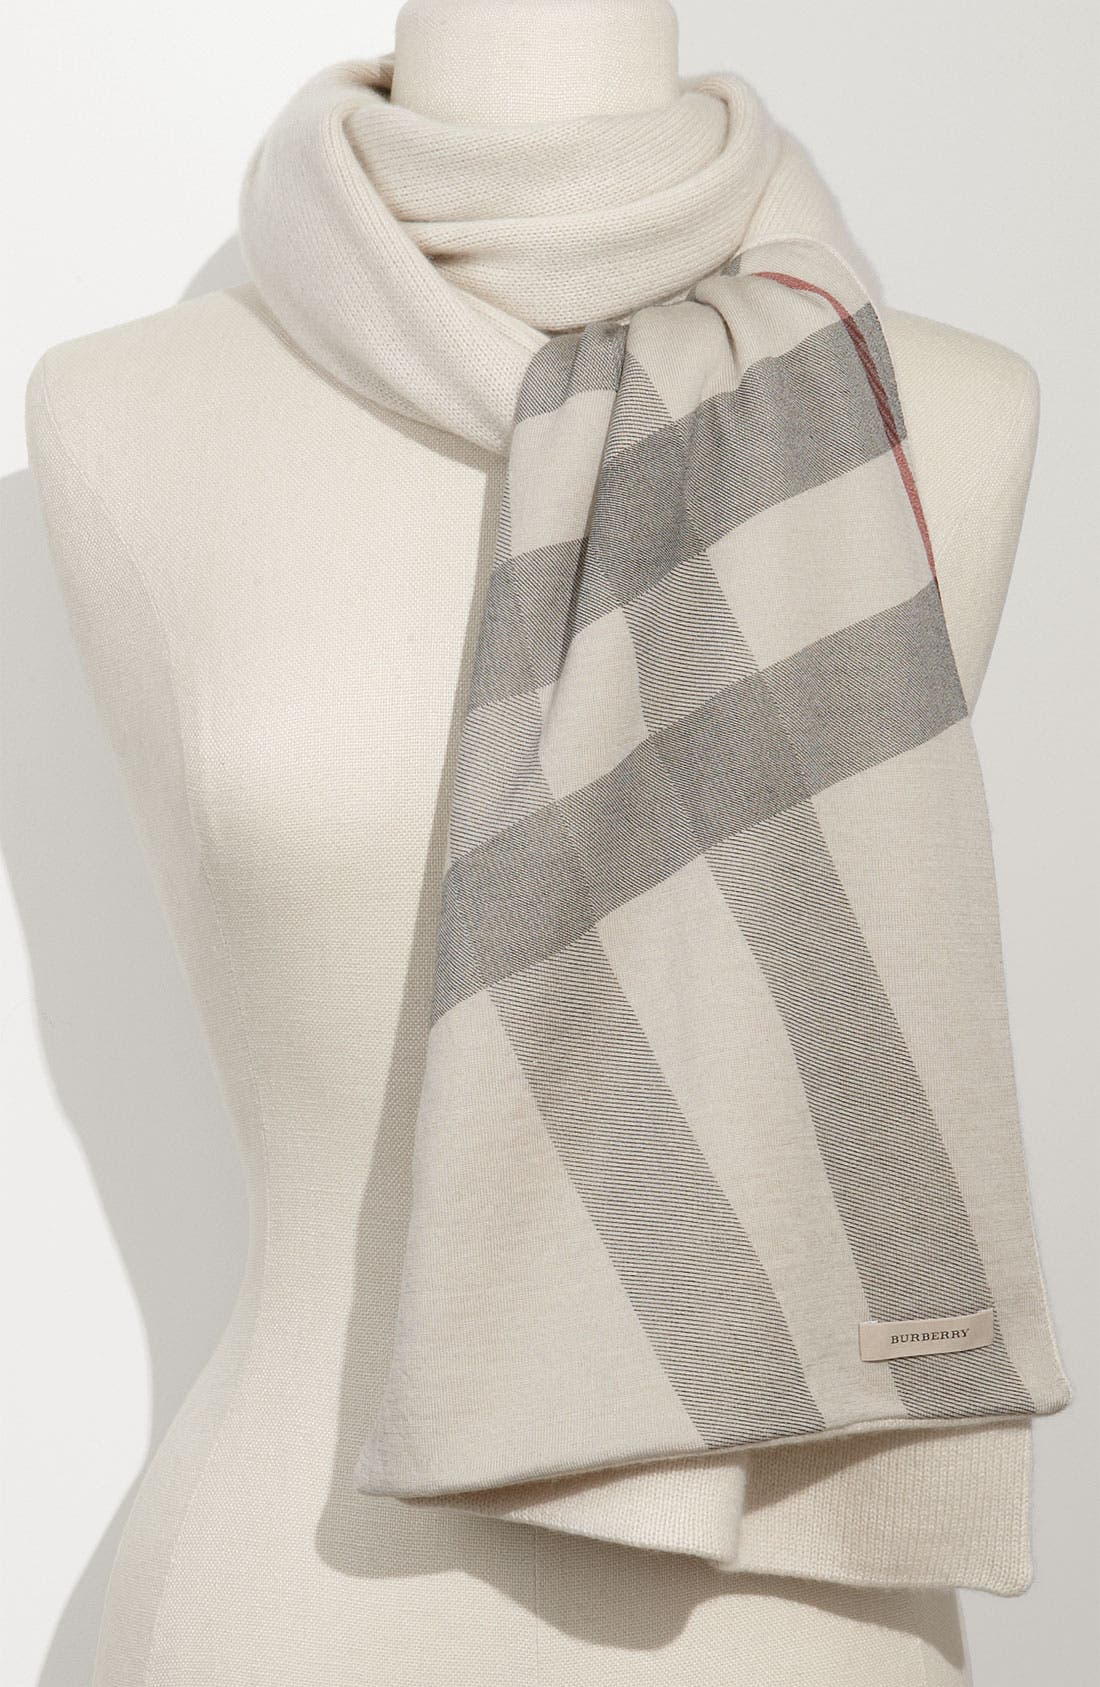 Main Image - Burberry Solid & Check Cashmere Scarf